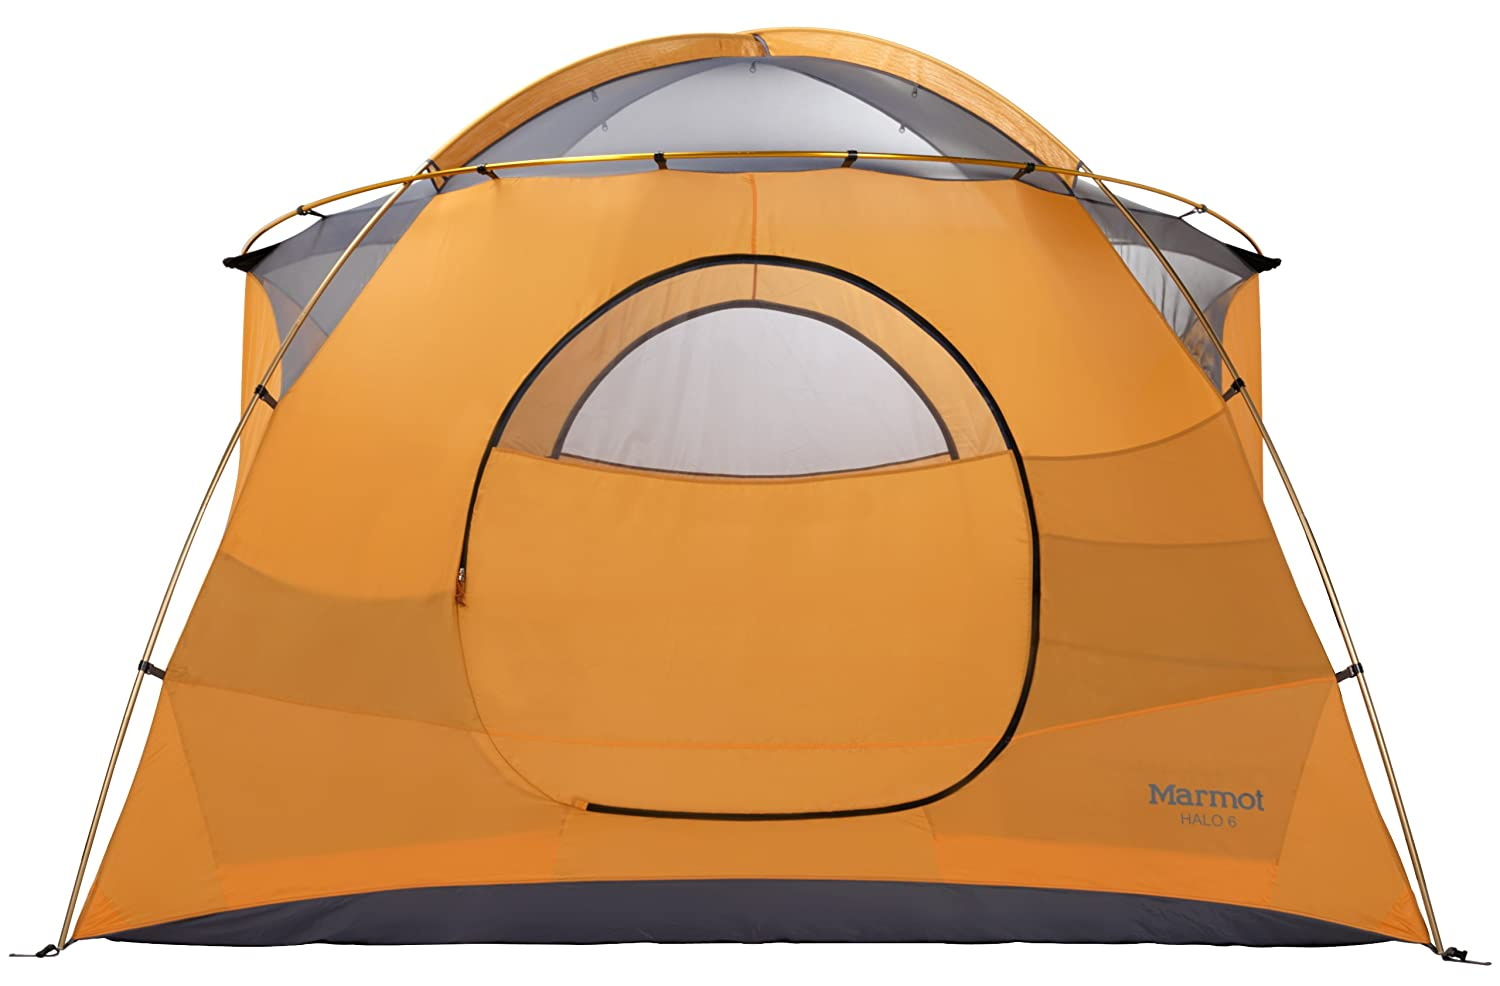 Amazon.com  Marmot Halo 6-Persons Tent Orange One  Sports u0026 Outdoors  sc 1 st  Amazon.com & Amazon.com : Marmot Halo 6-Persons Tent Orange One : Sports ...